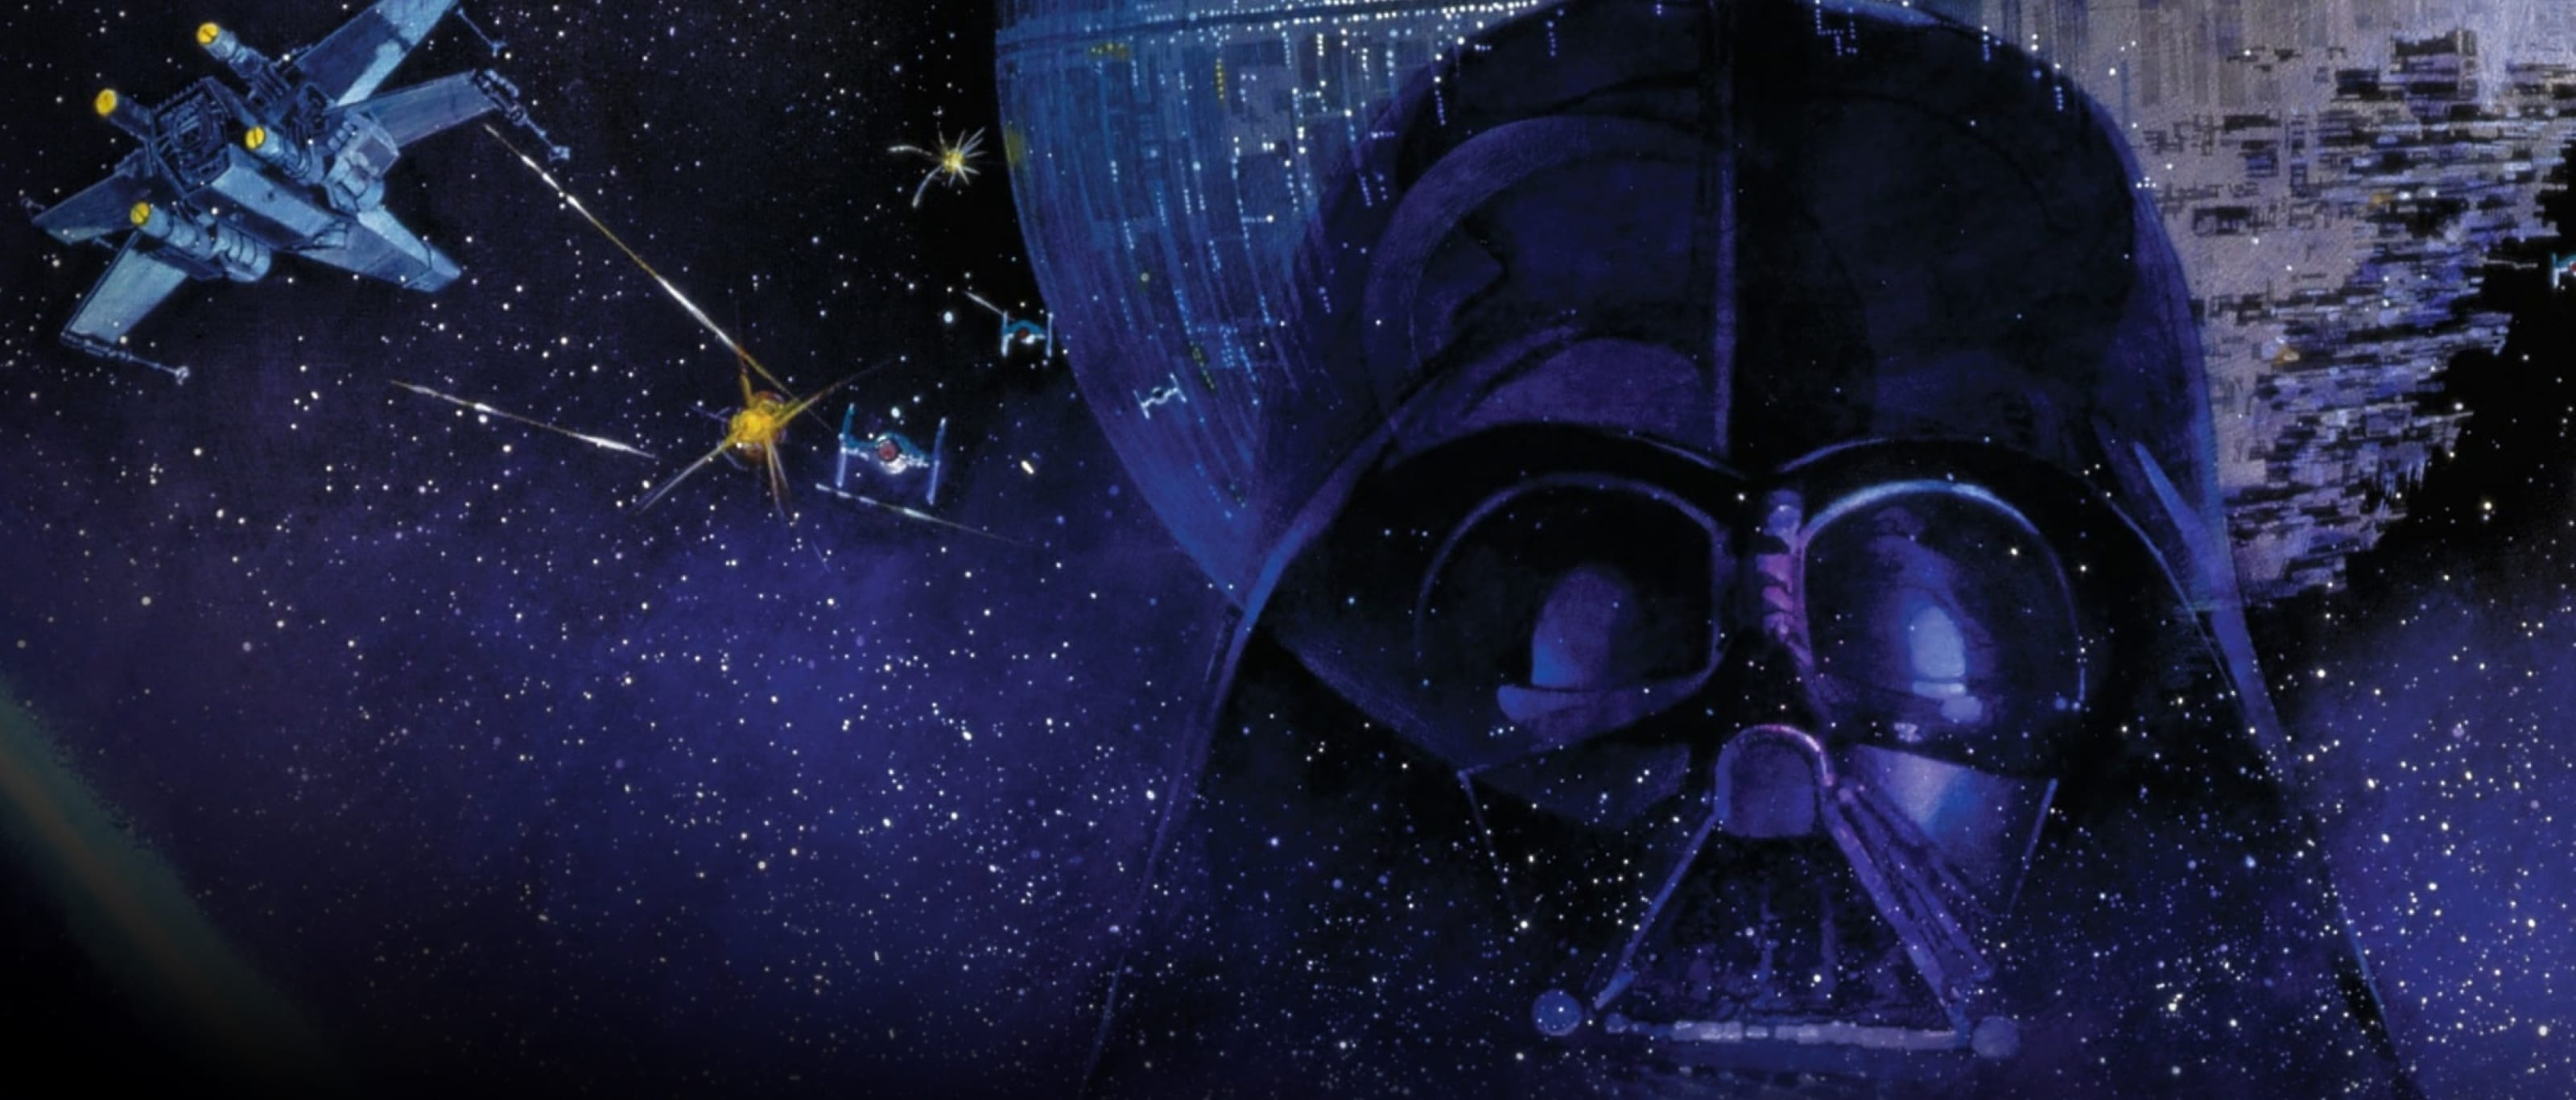 Book tickets with Disney Tickets for Star Wars: Return of The Jedi In Concert - London